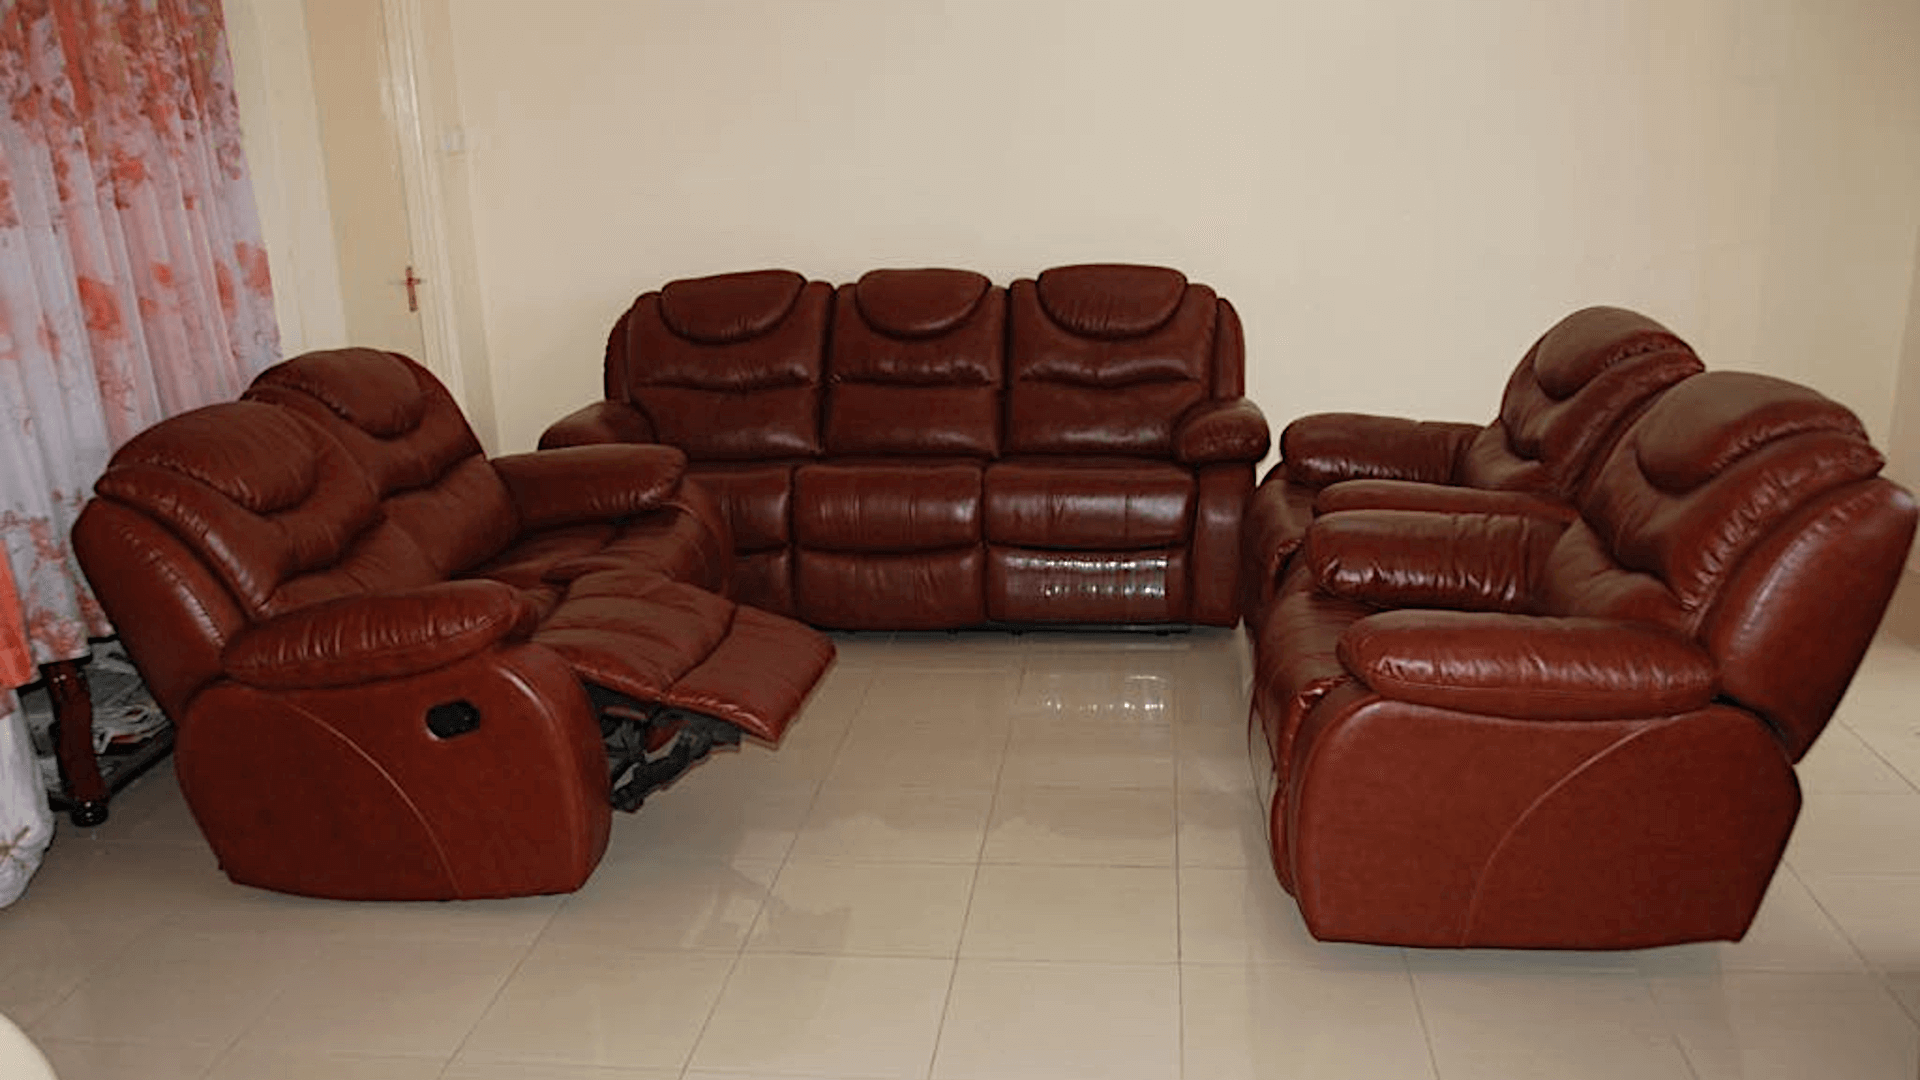 Awe Inspiring 7 Seat Pure Leather Brown Recliner Sofa Set Download Free Architecture Designs Grimeyleaguecom